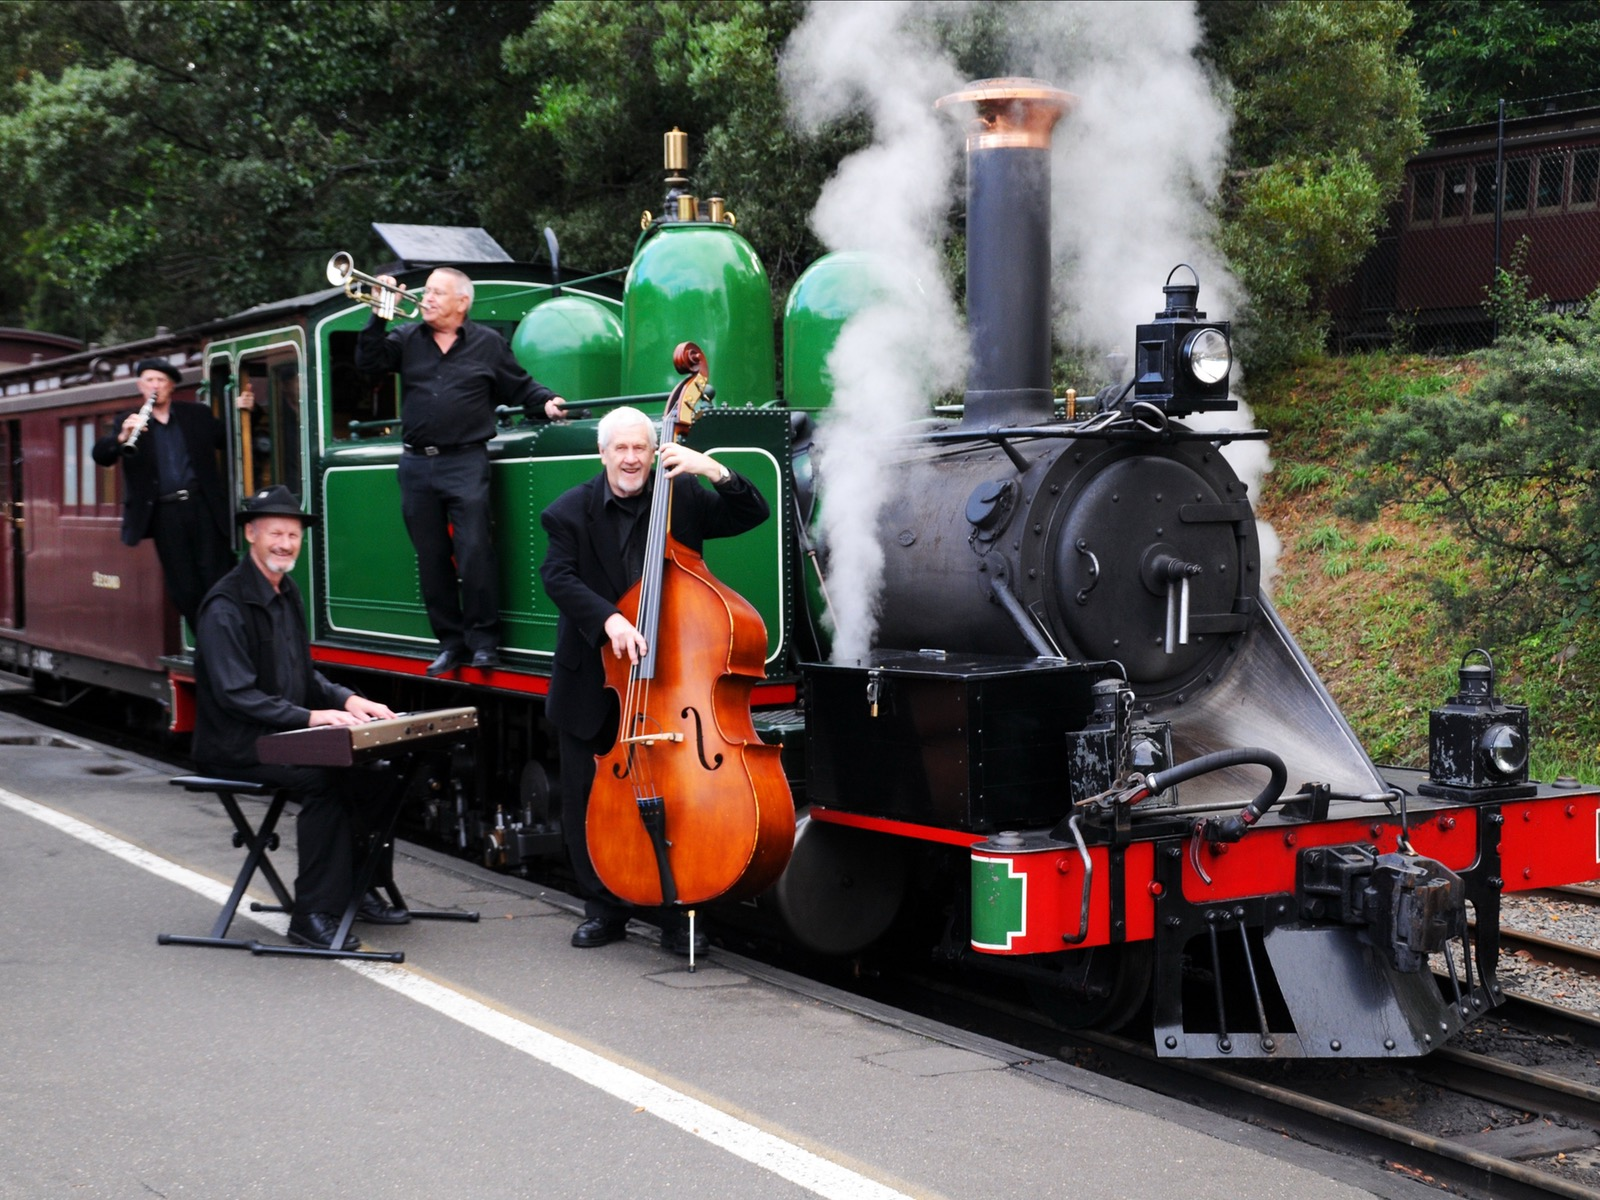 The Mast Gully Quartet Jazz band at Puffing Billy Railway